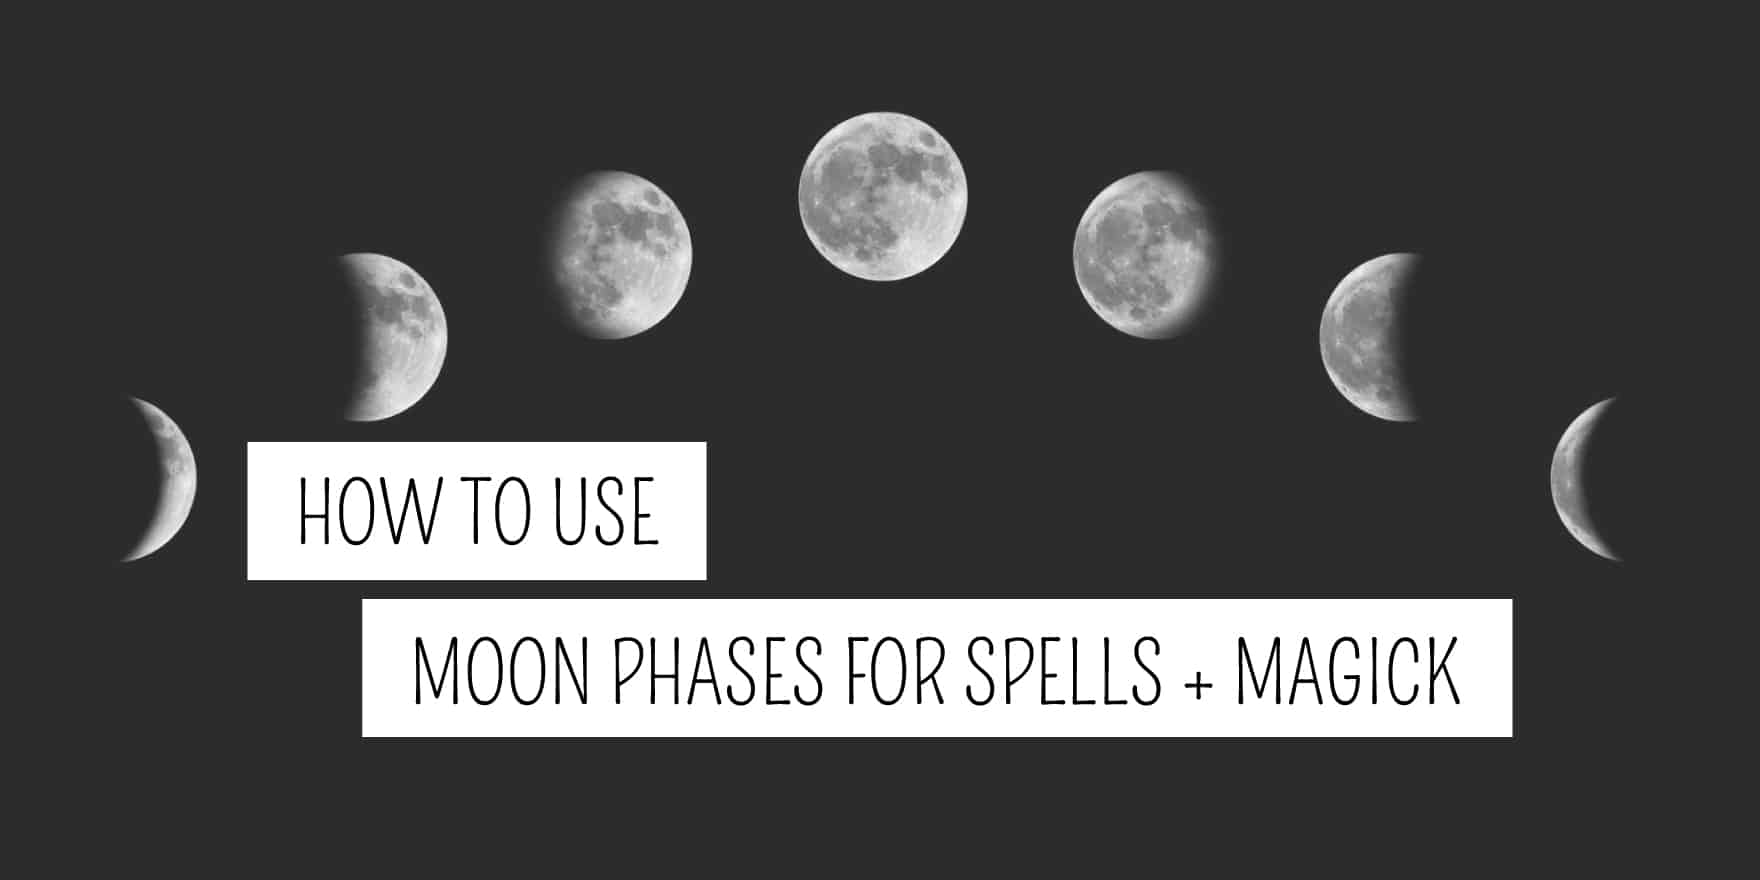 How To Use The Moon Phases For Spells And Magick